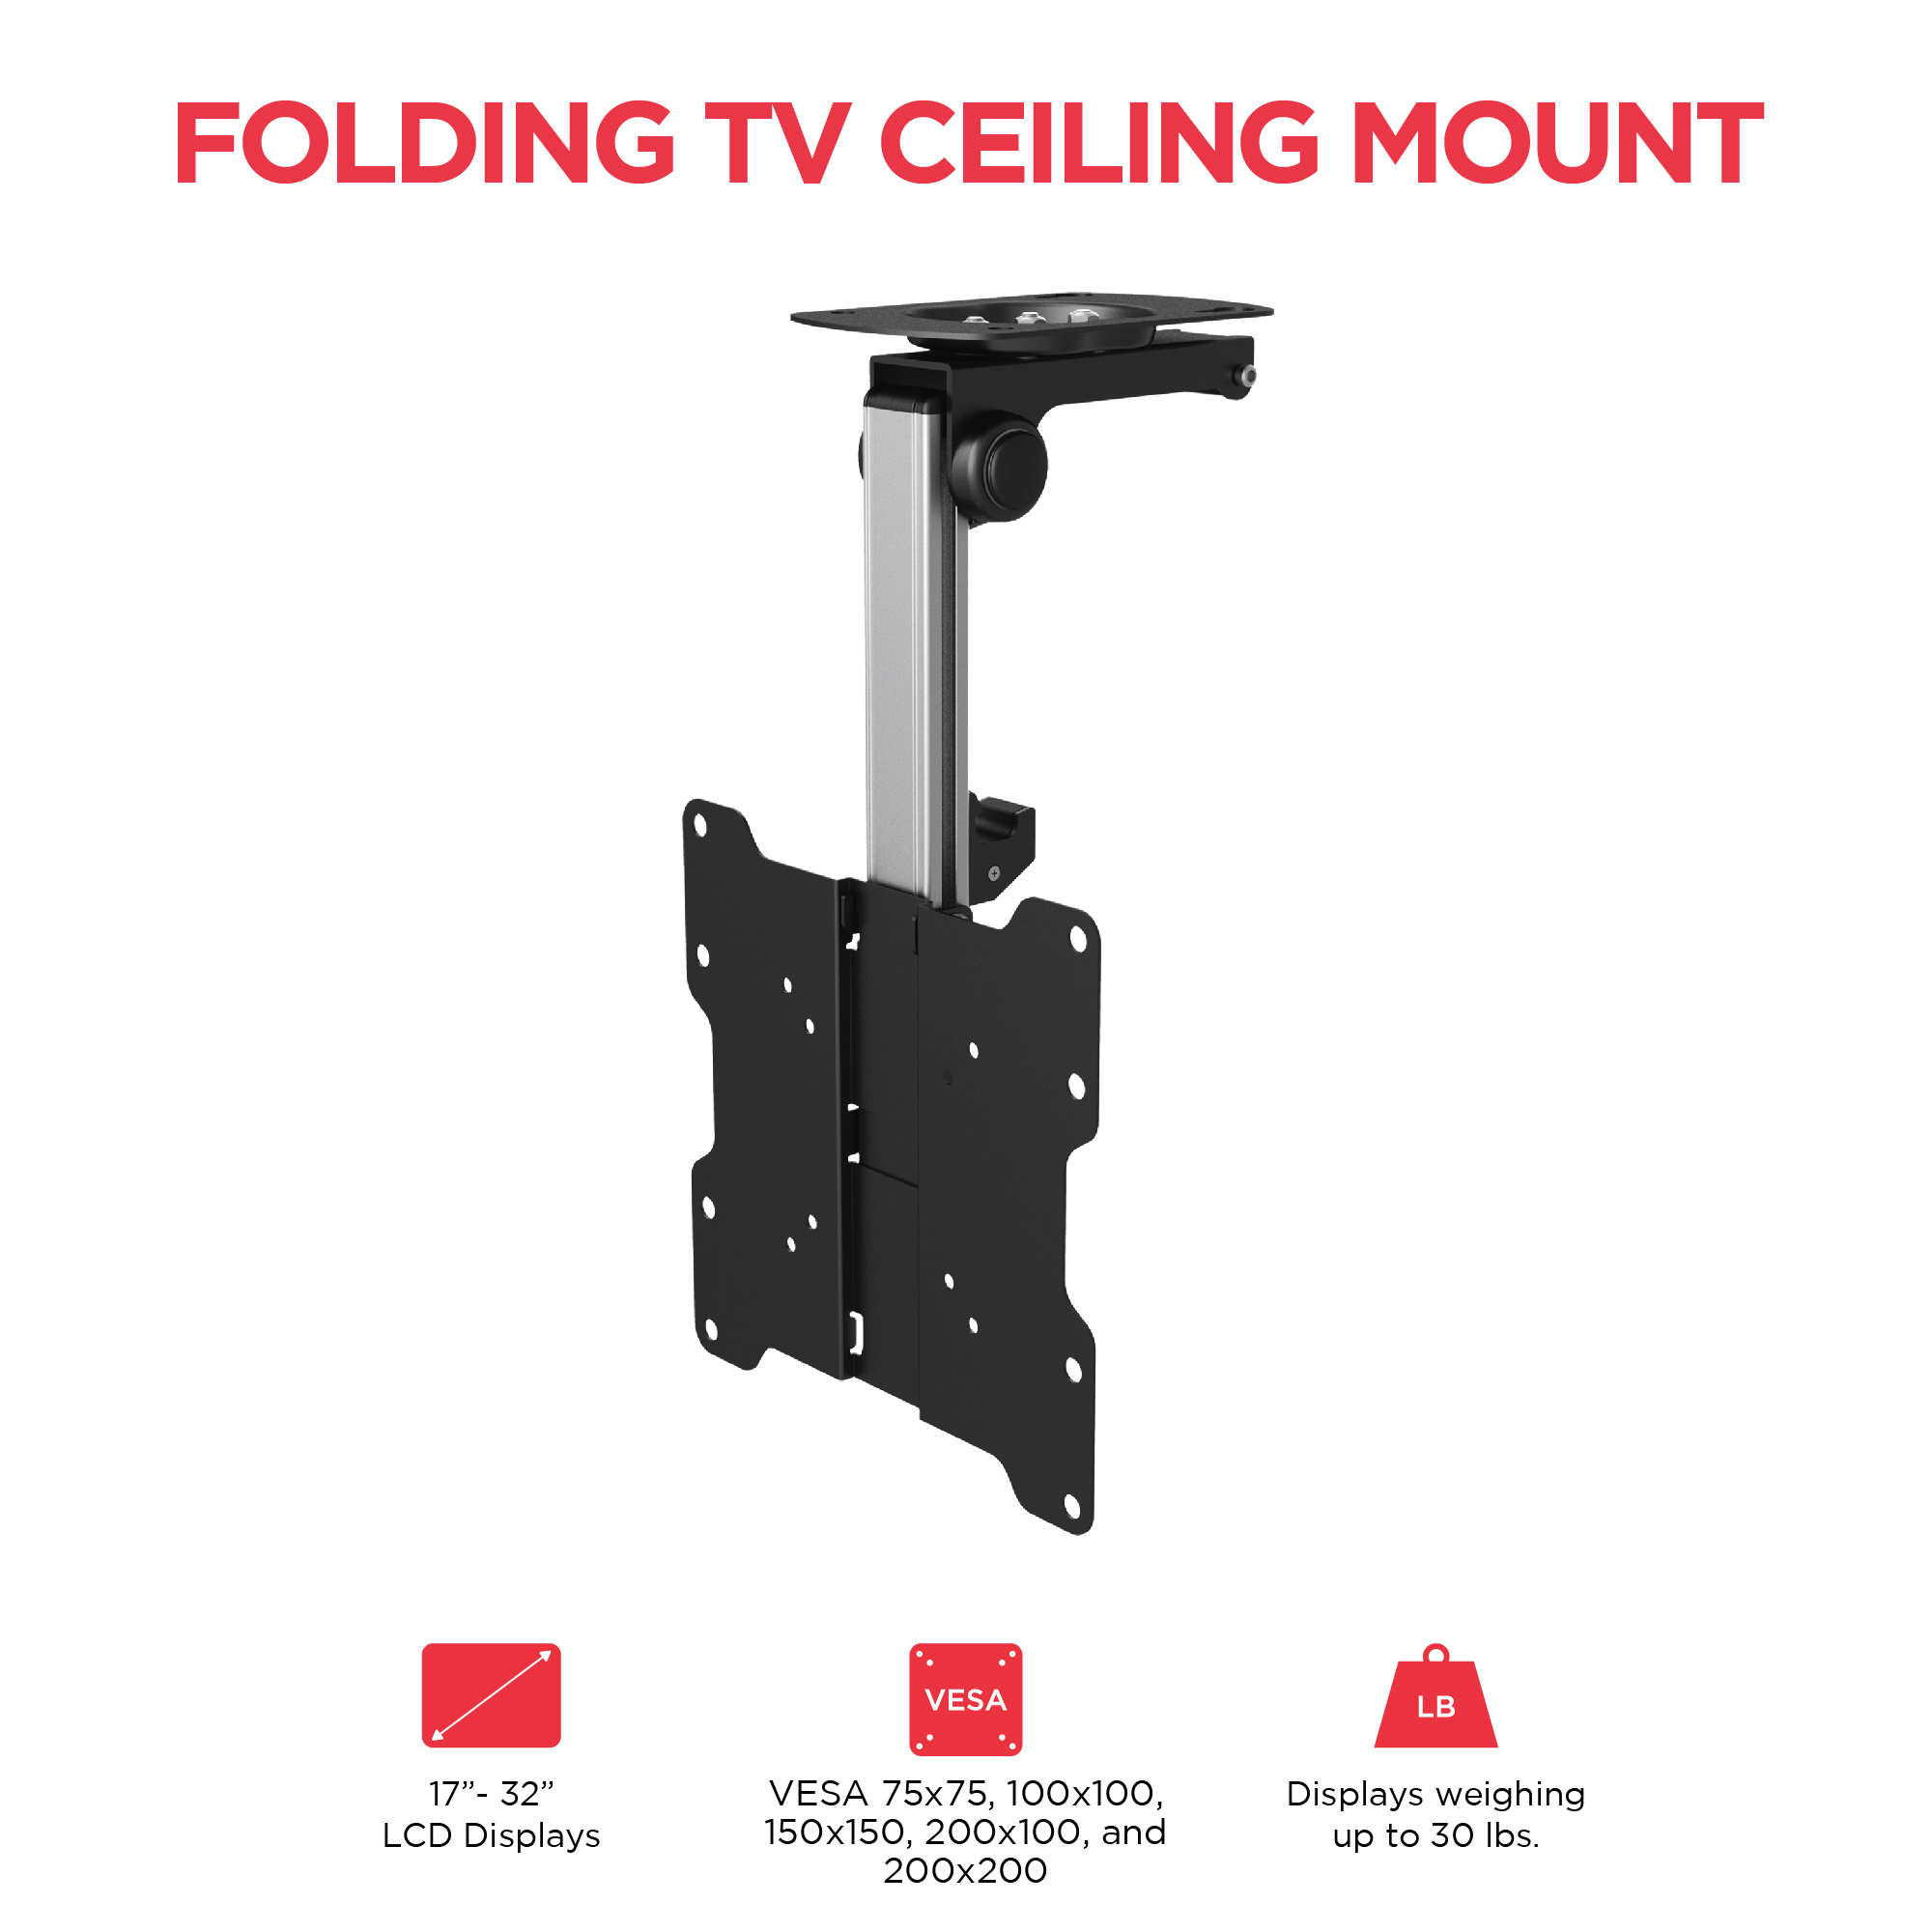 mounted solutions for tv and mounting mount ceilings wall installation ceiling professionals professional mouted service